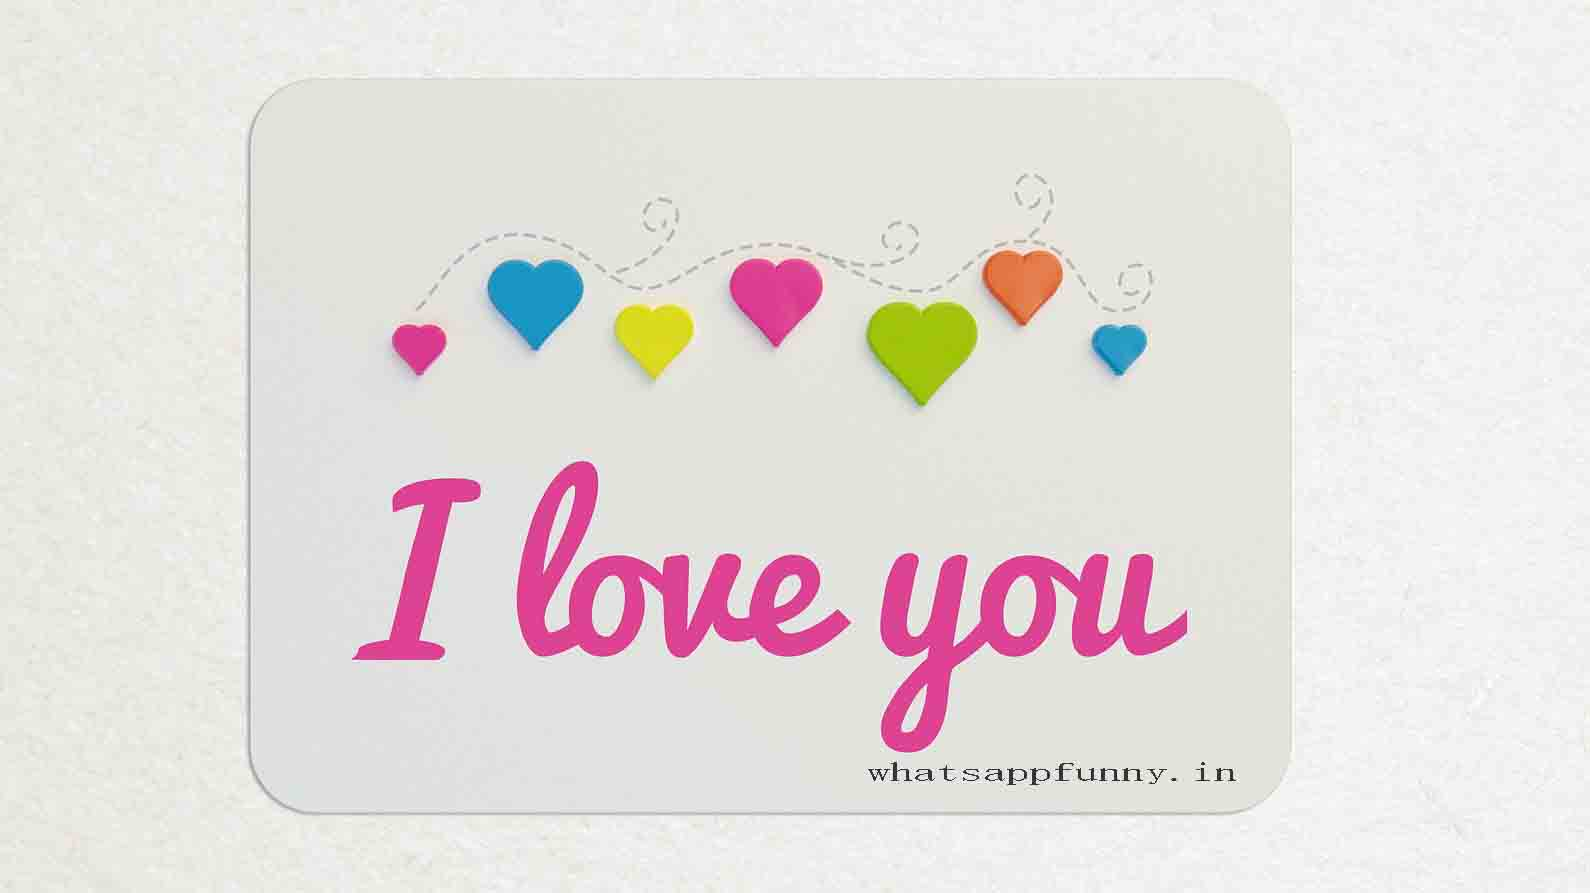 i love you images download for whatsapp hd